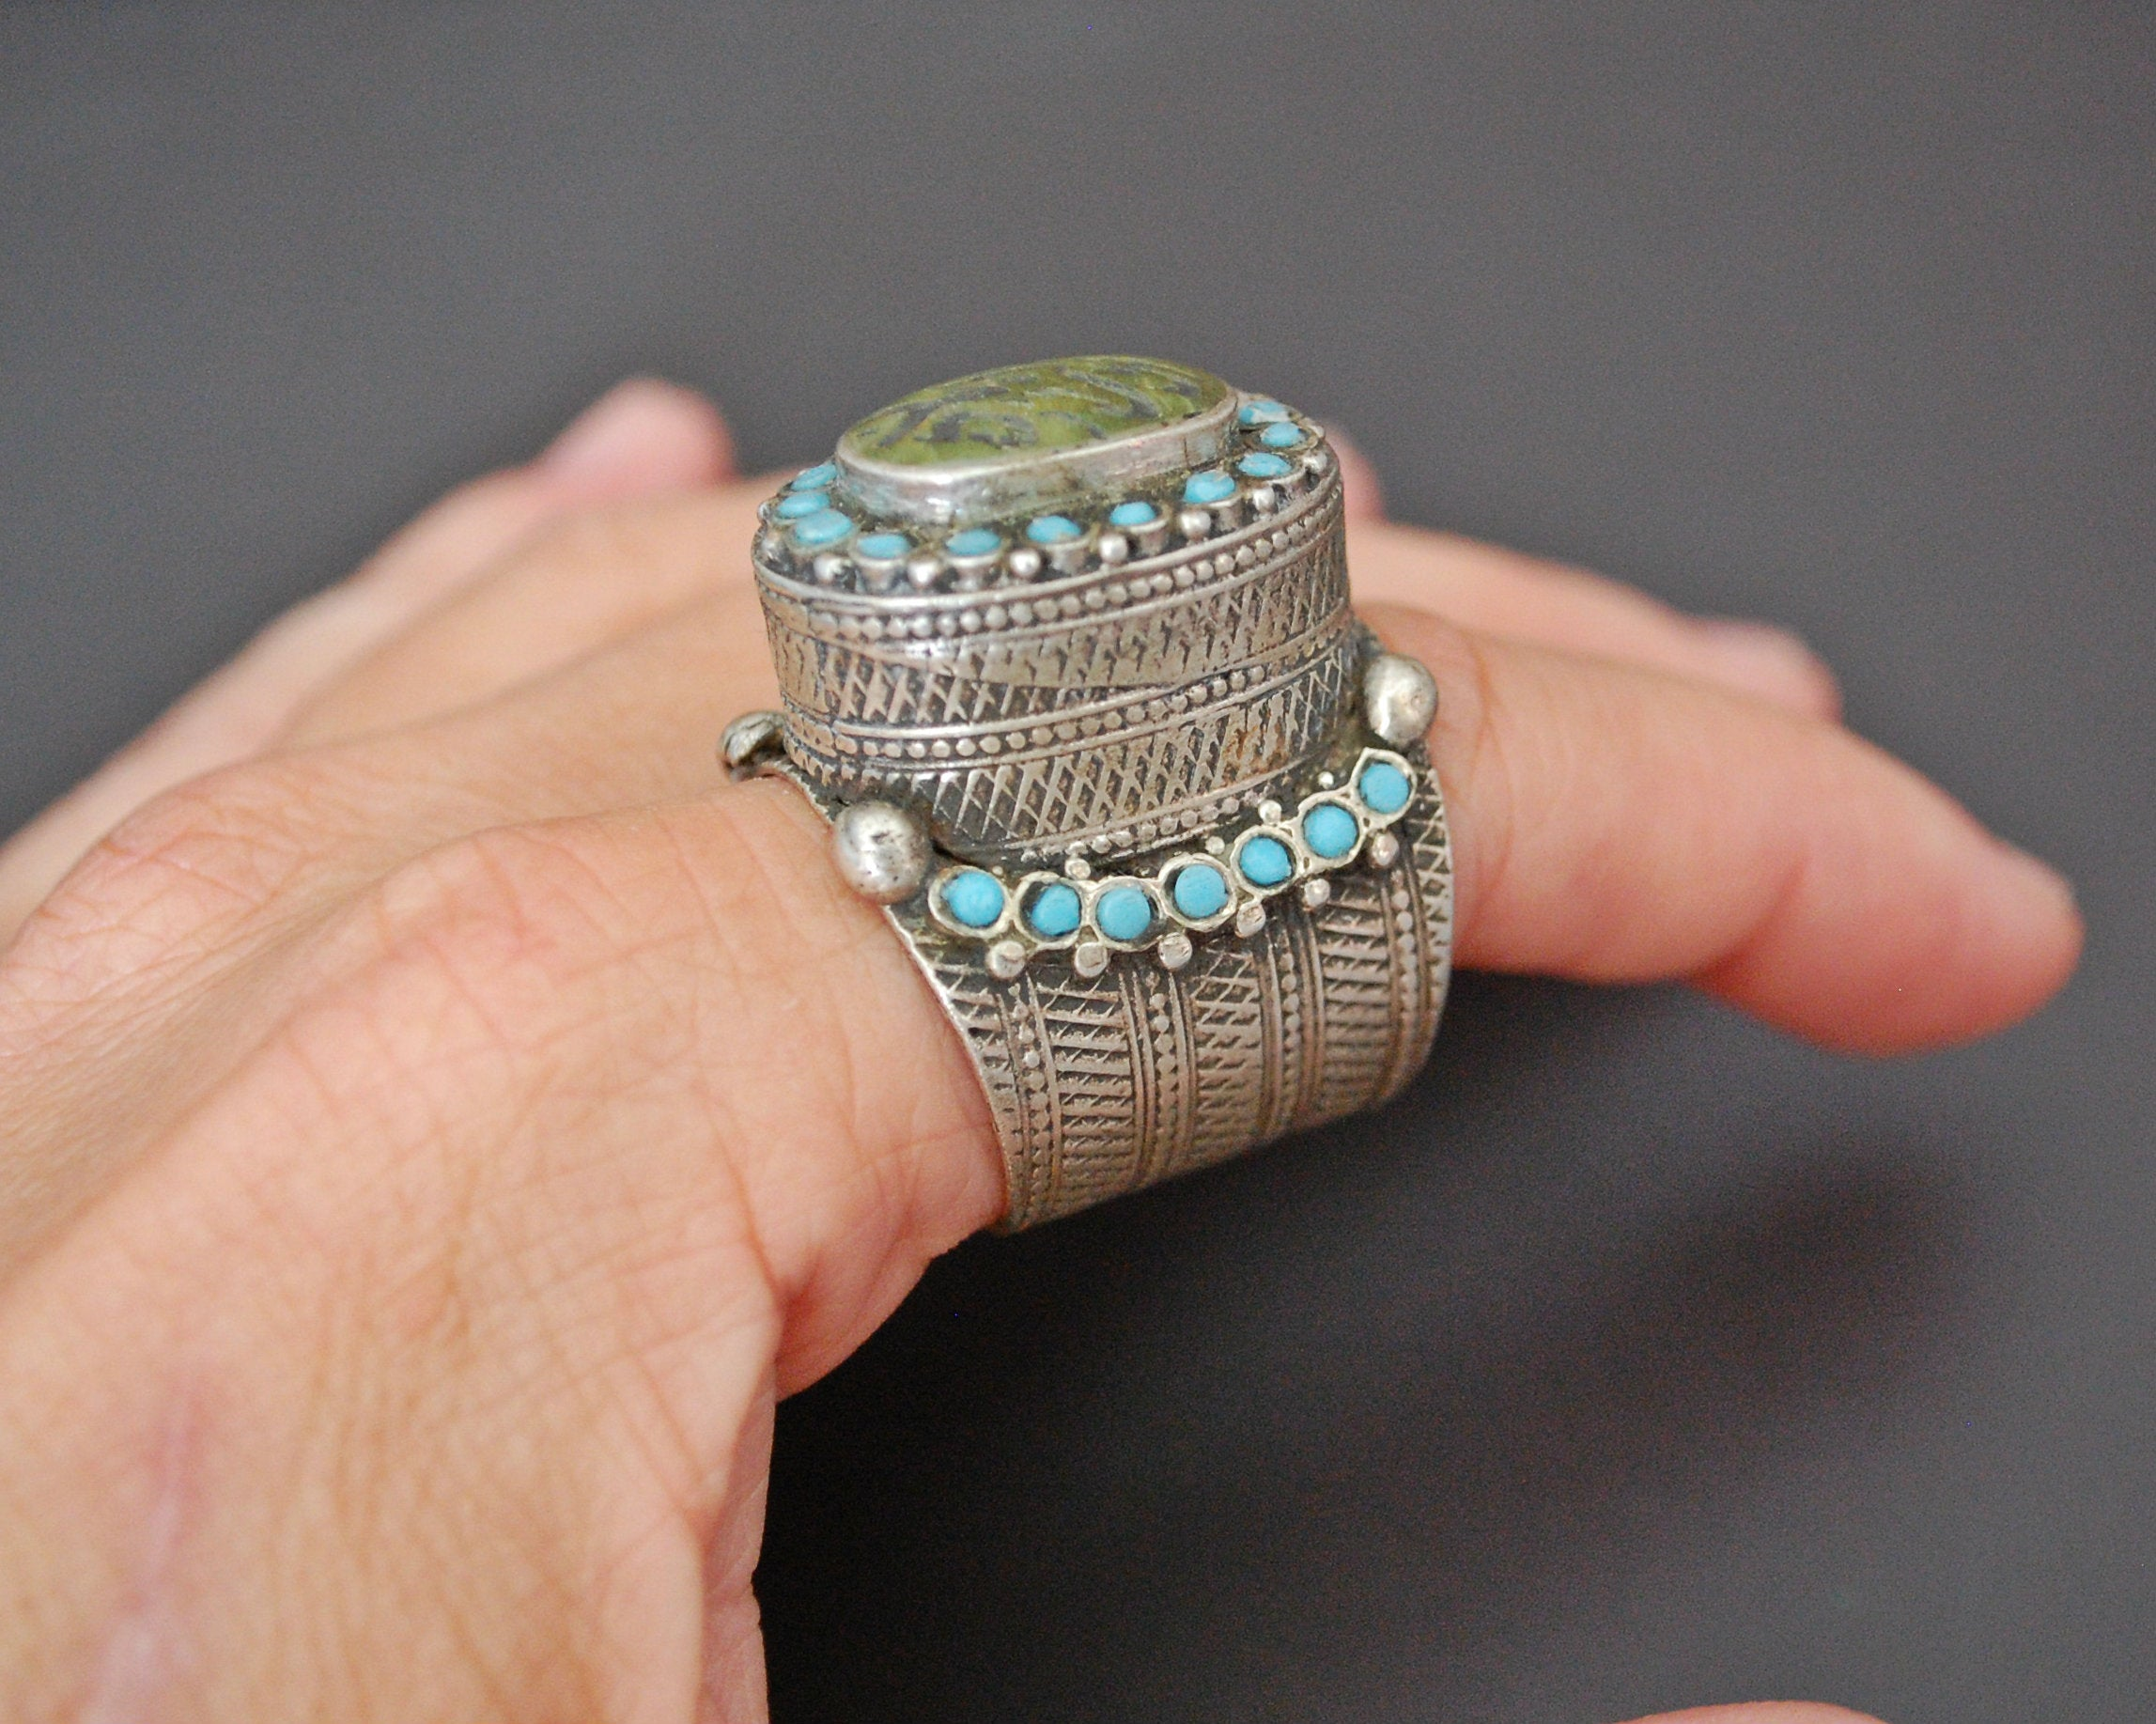 Antique Turkmen Ring with Turquoises - Size 9 / 9.5